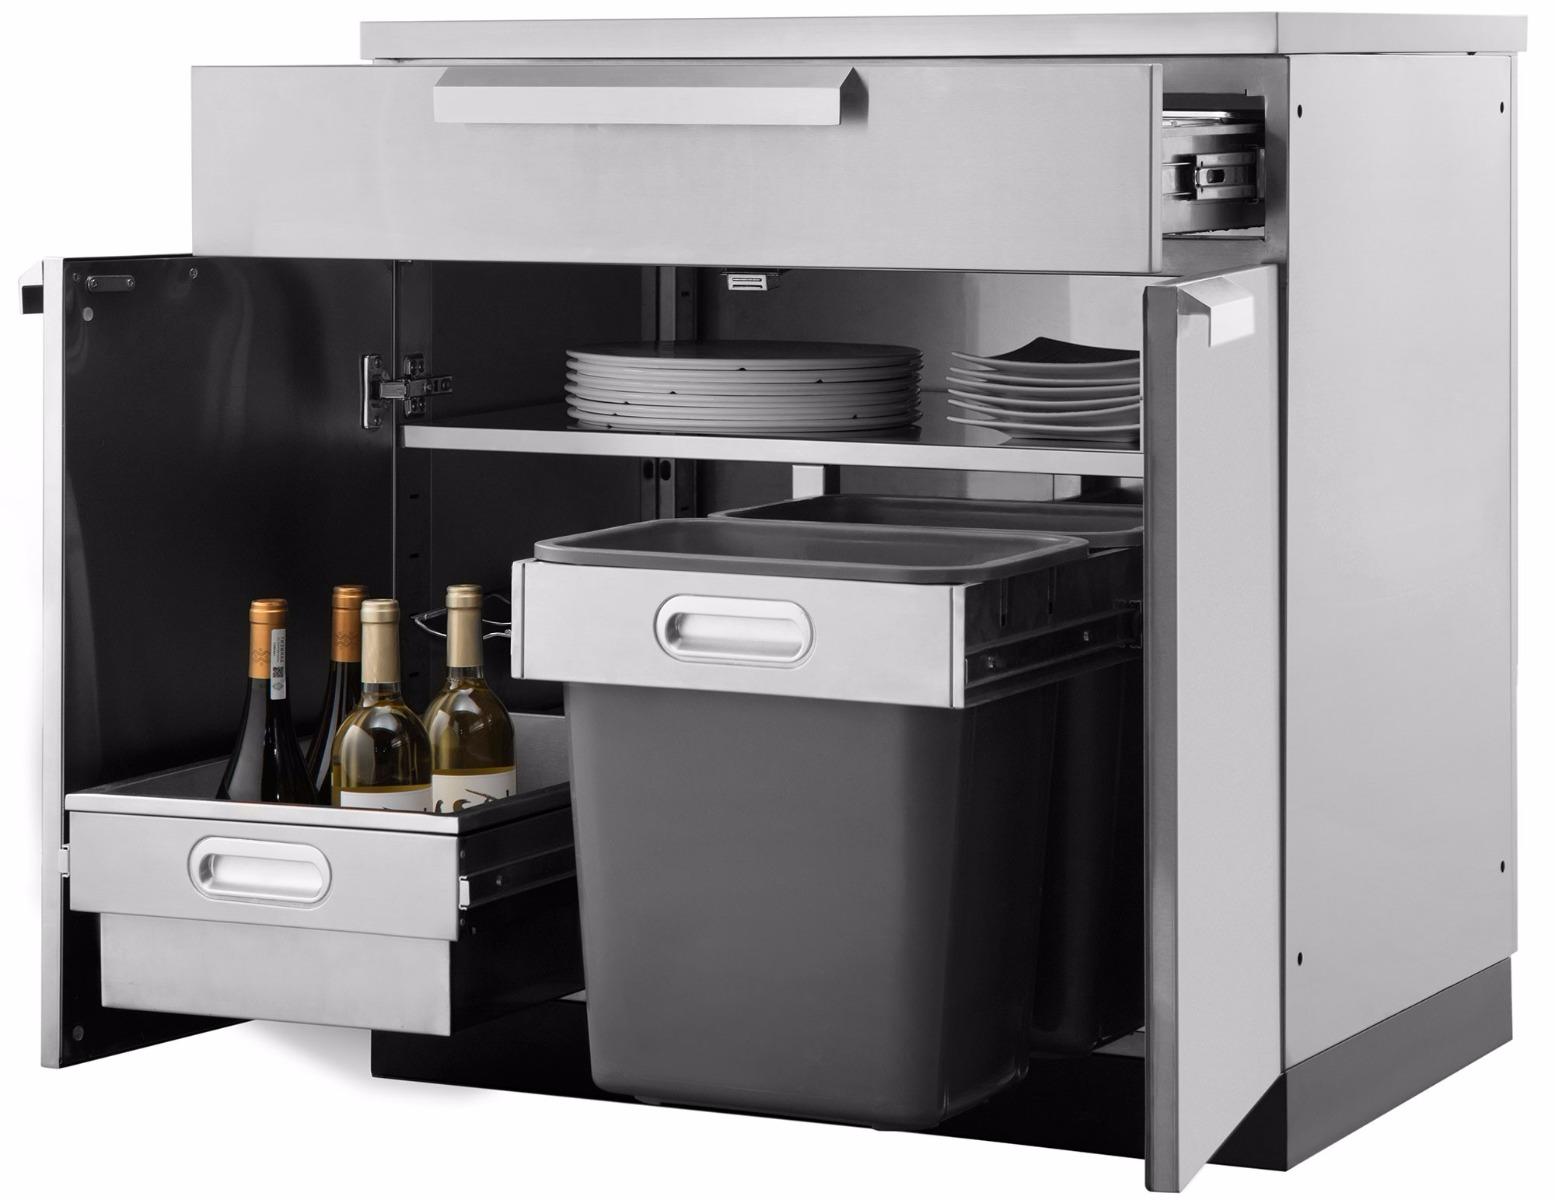 Outdoor Stainless Steel Cabinets Outdoor Kitchen Bbq Cabinets Stainless Steel Garagepride